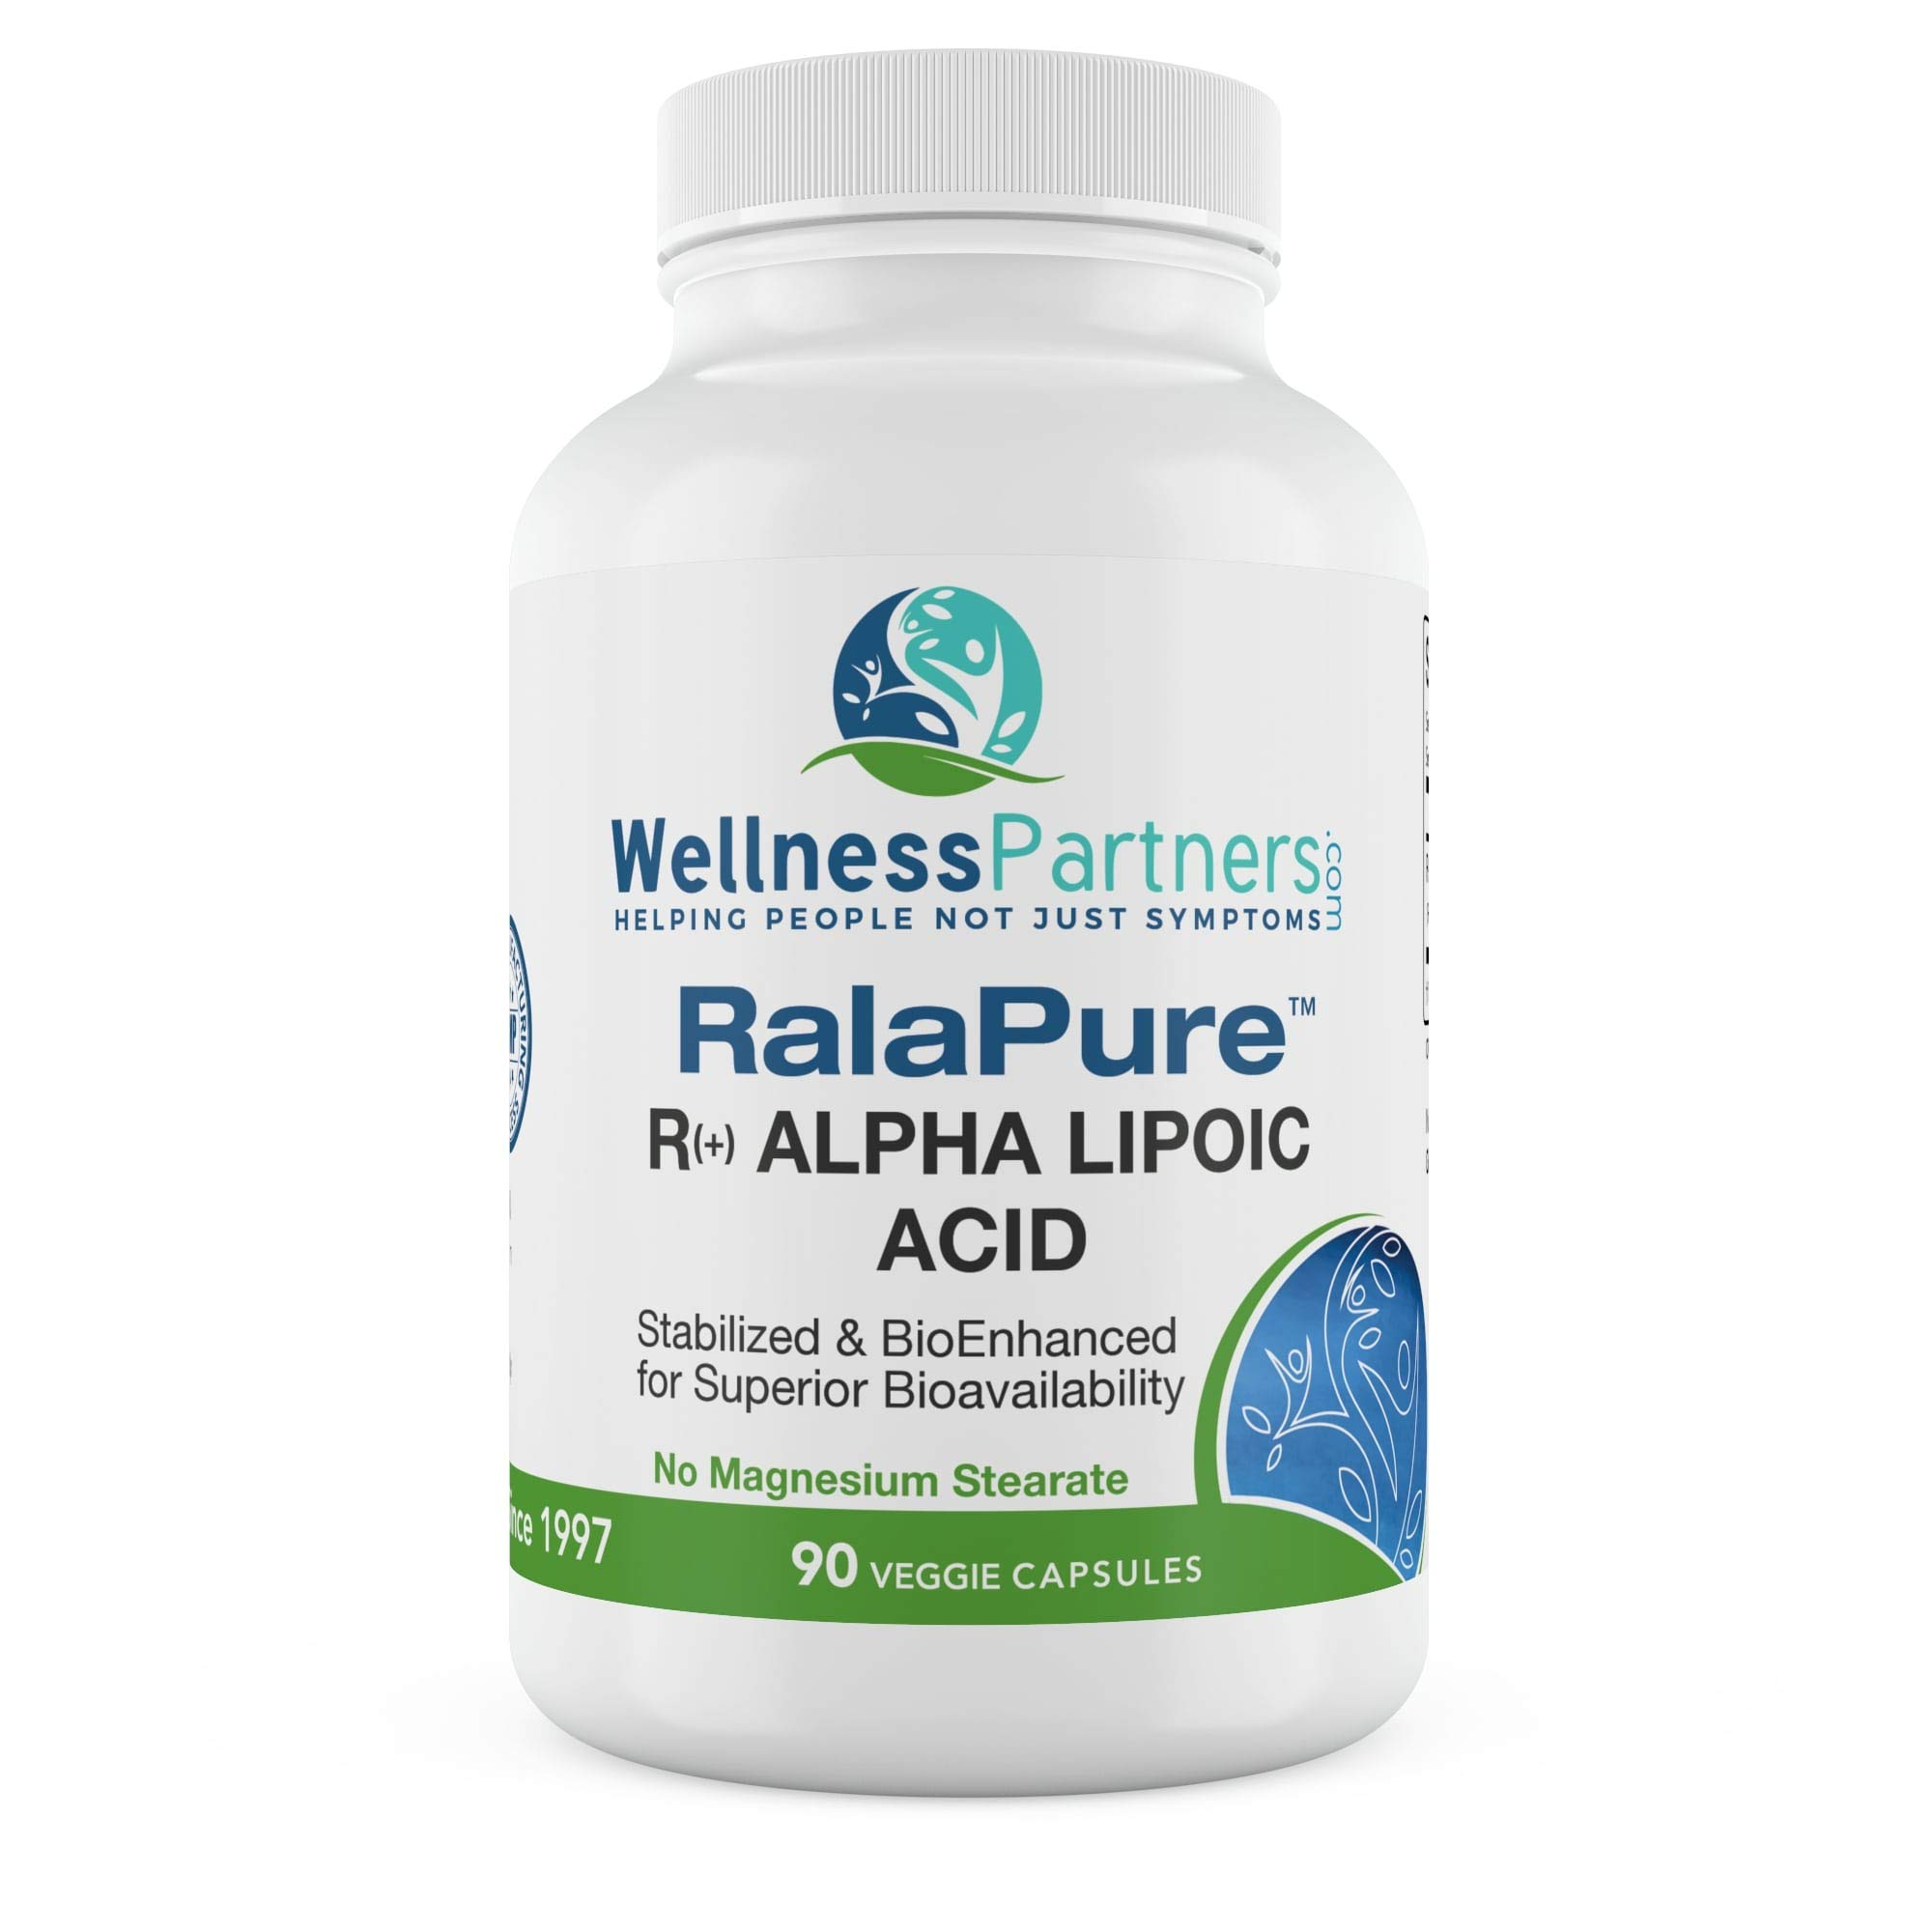 RalaPure Stabilized R-alpha Lipoic Acid - ALA up to a 30 Day Supply by WellnessPartners